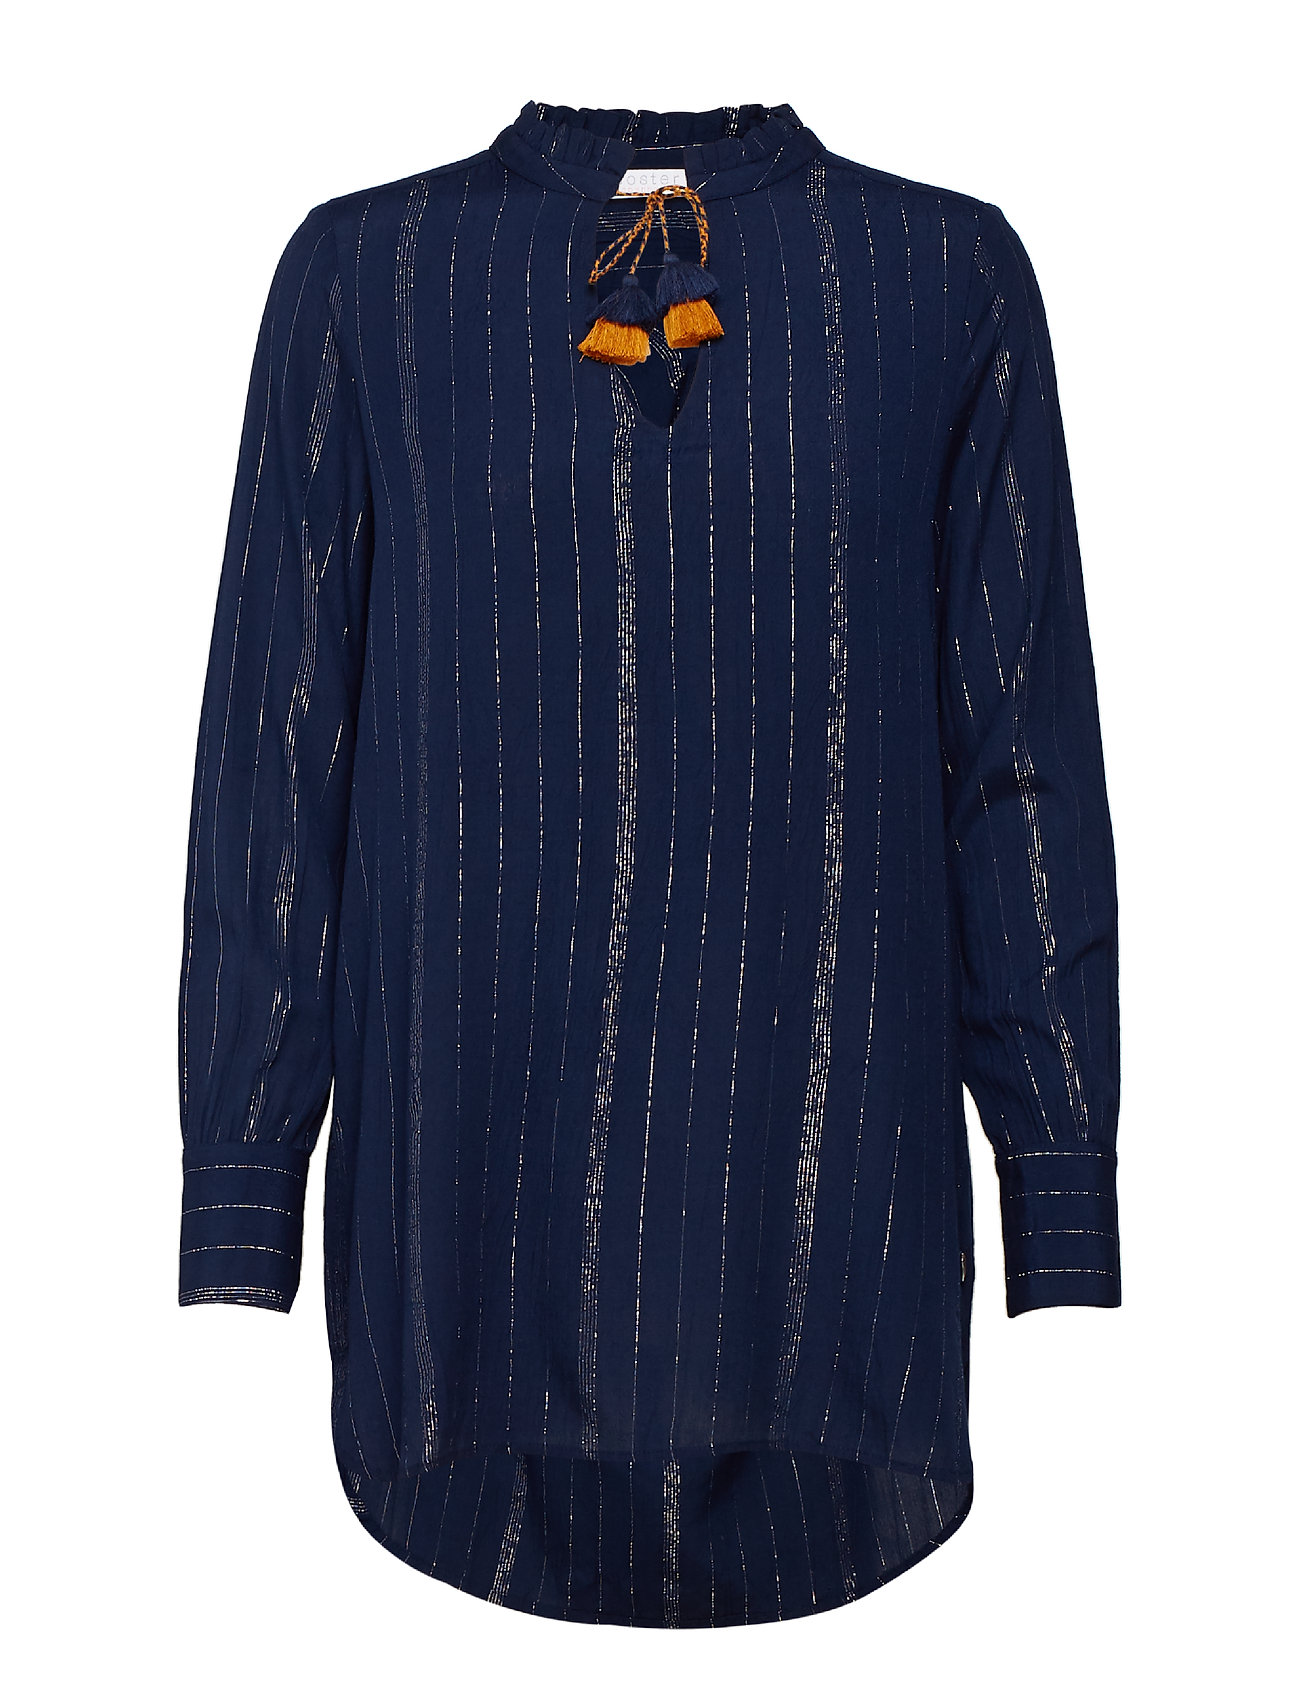 Coster Copenhagen Blouse w. lurex stripes